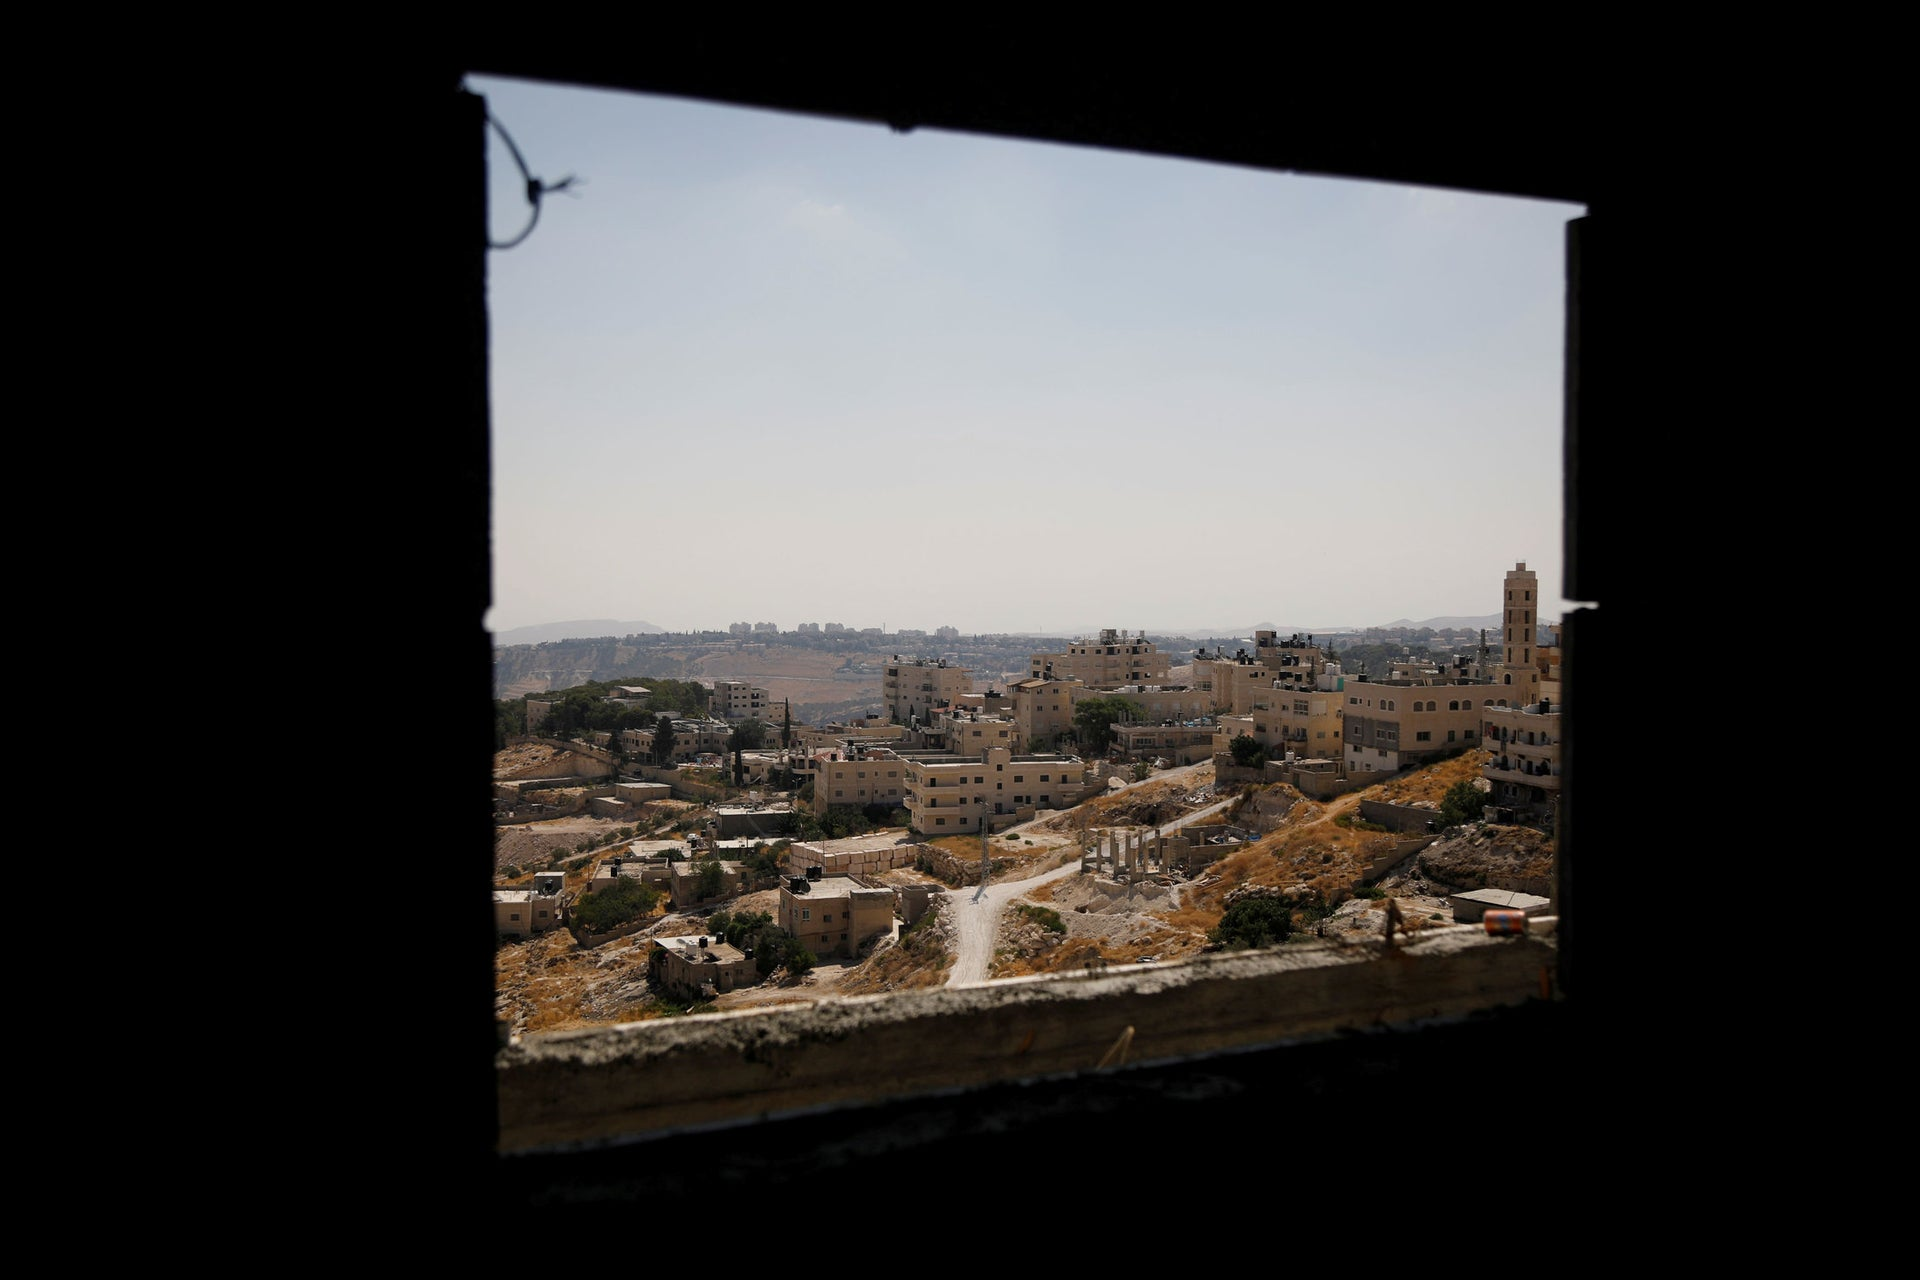 A view shows Palestinian houses in al-Eizariya village, close to the Jewish settlement of Maale Adumim